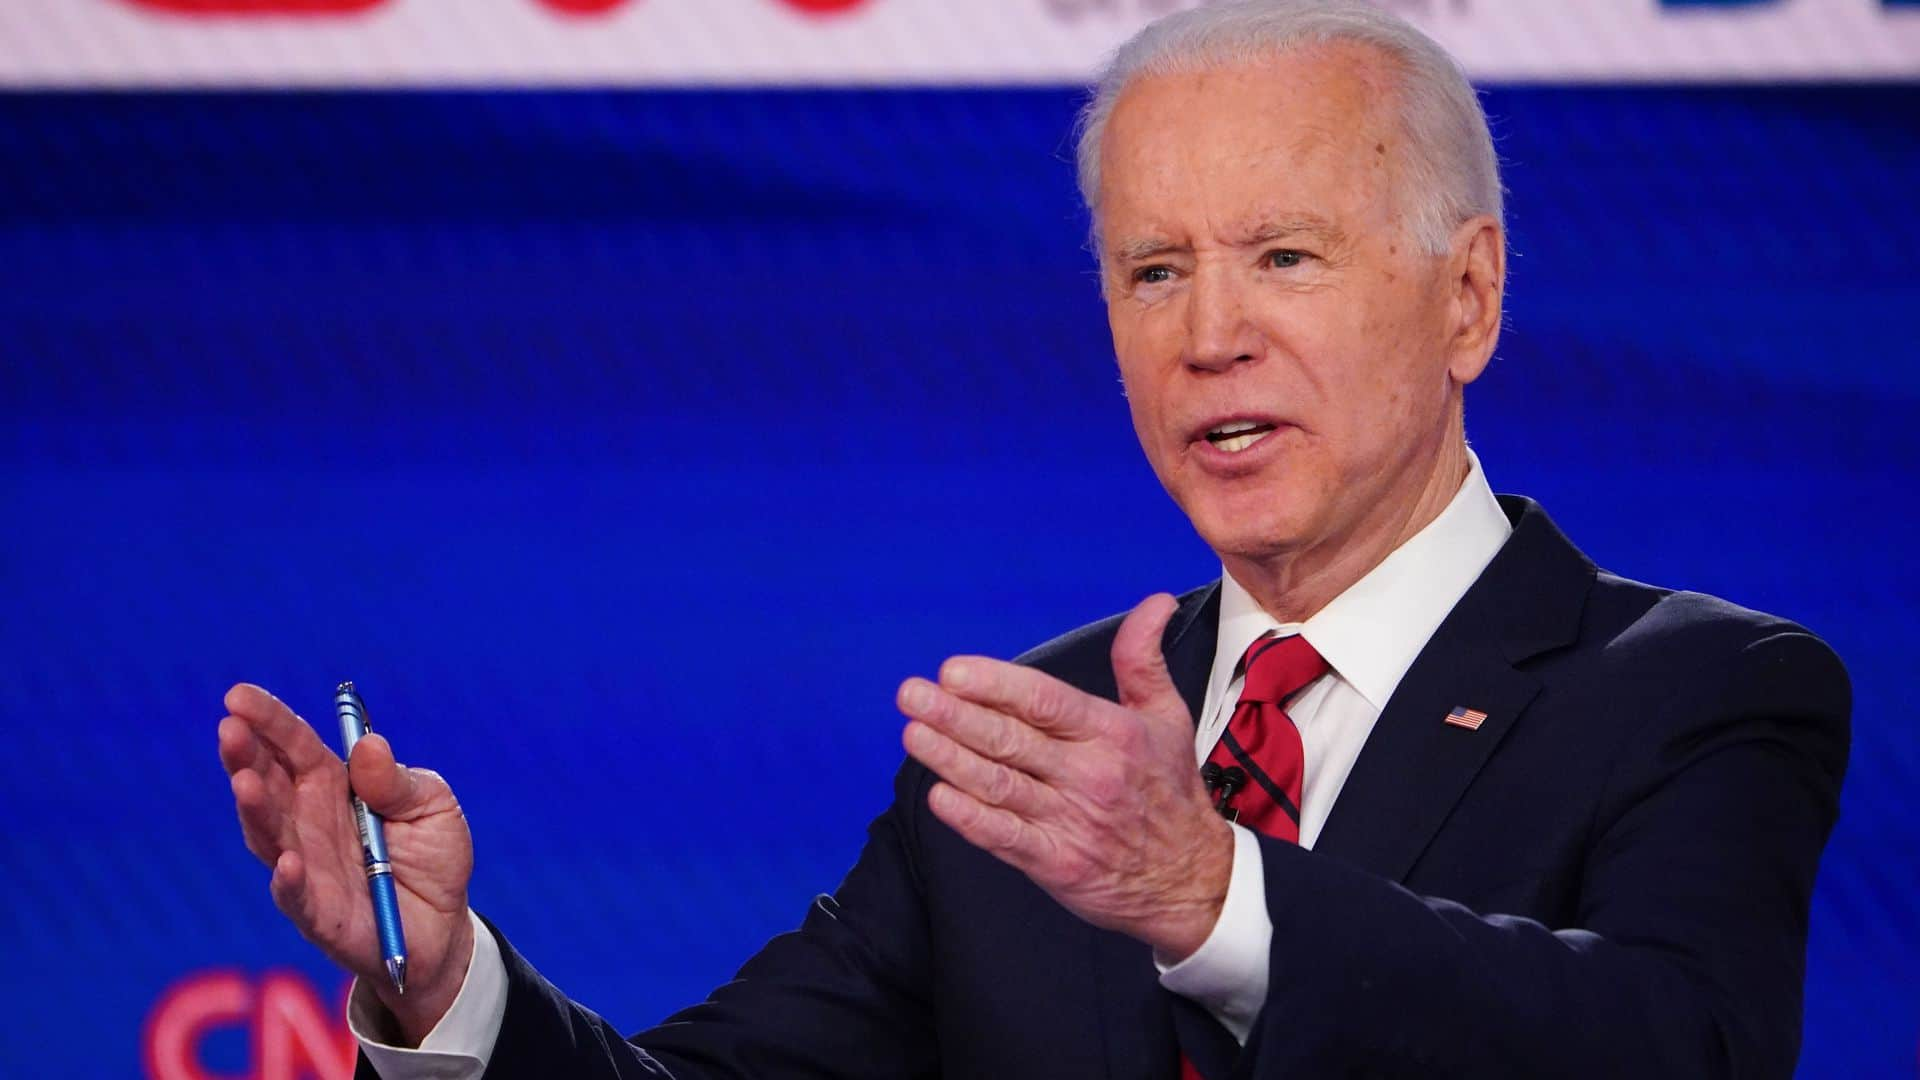 Biden Is Going To Win And Become The New President